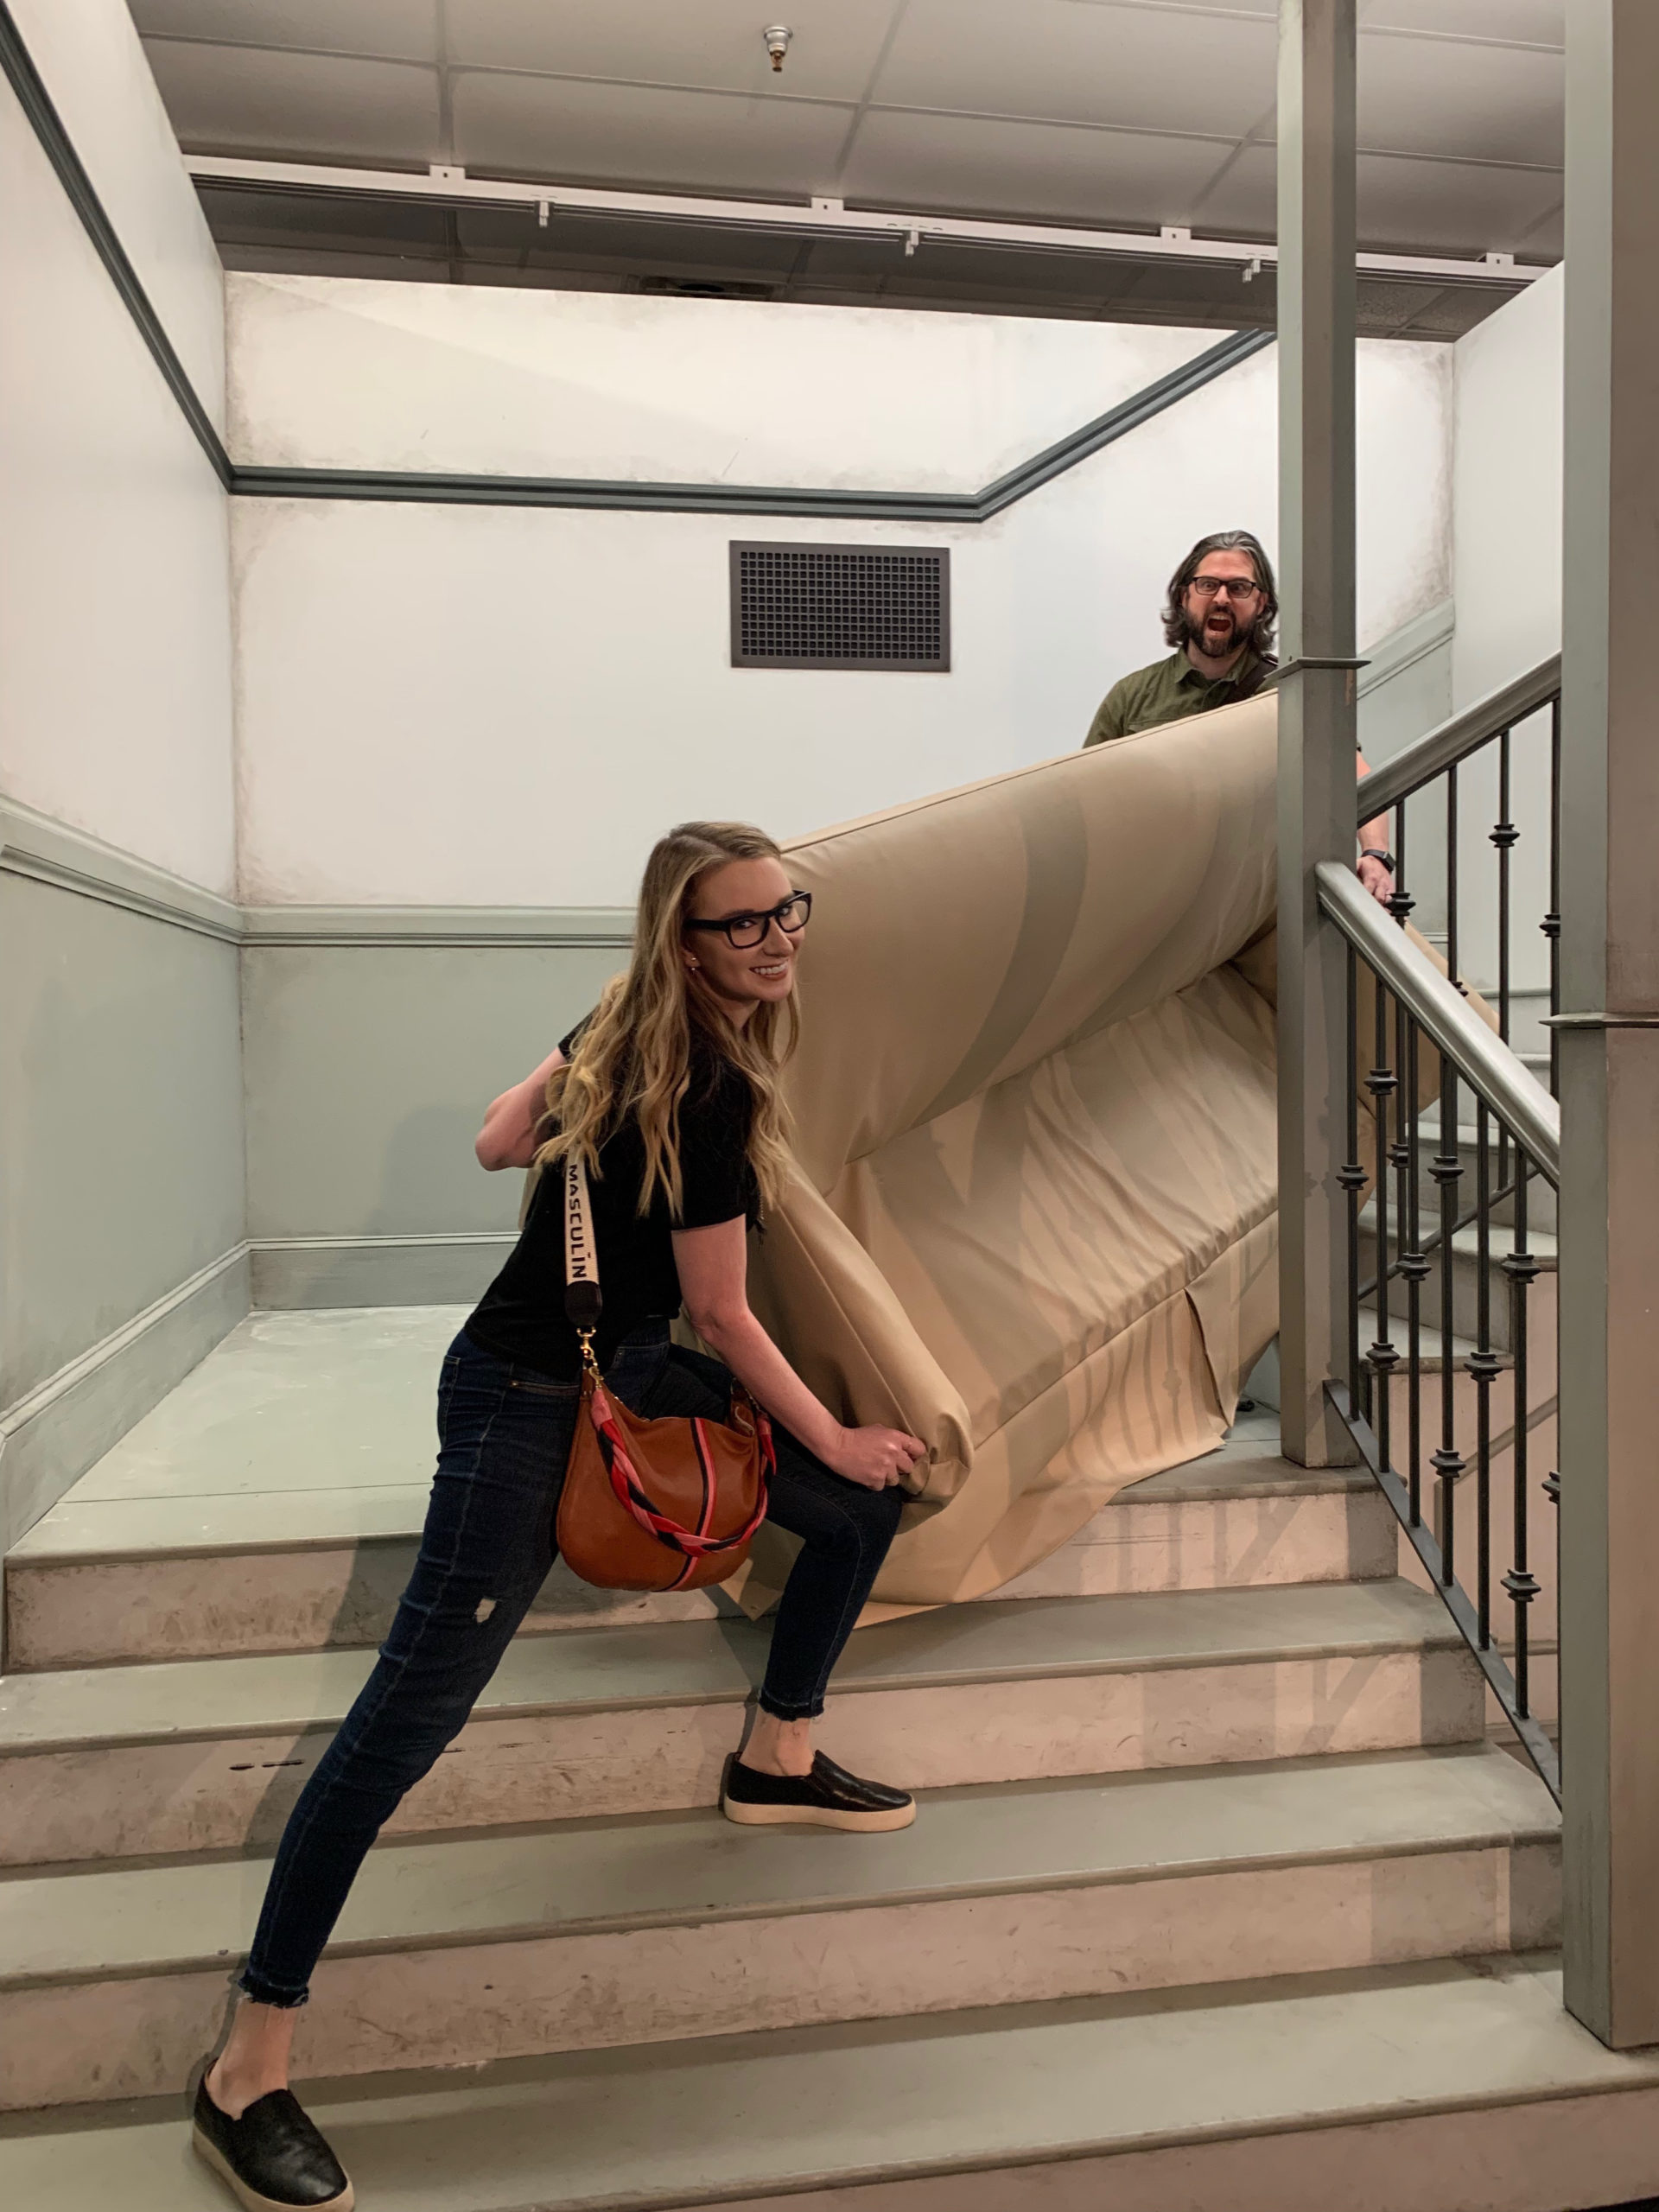 Friends Experience: The One in Atlanta